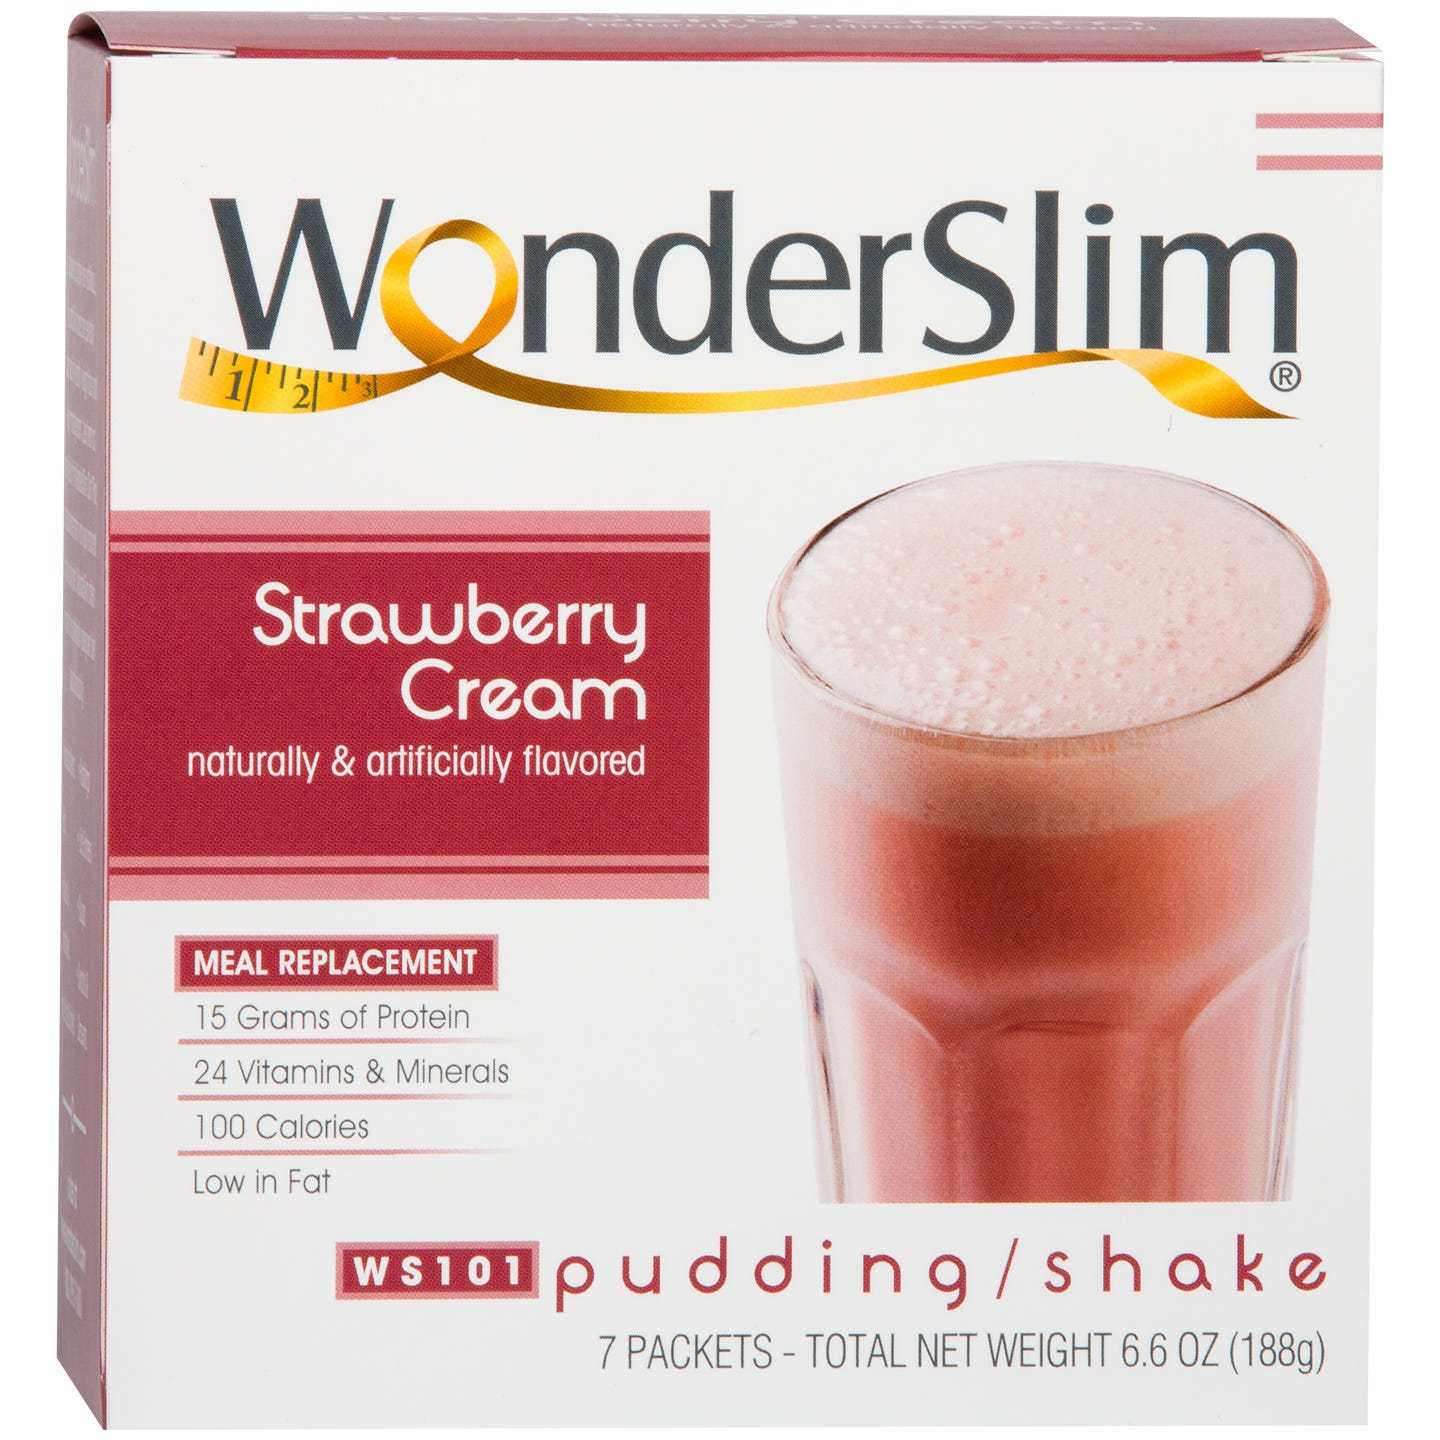 WonderSlim Meal Replacement Pudding/Shake Strawberry Cream (7 ct) - Rapid Diet Weight Loss Products Shop